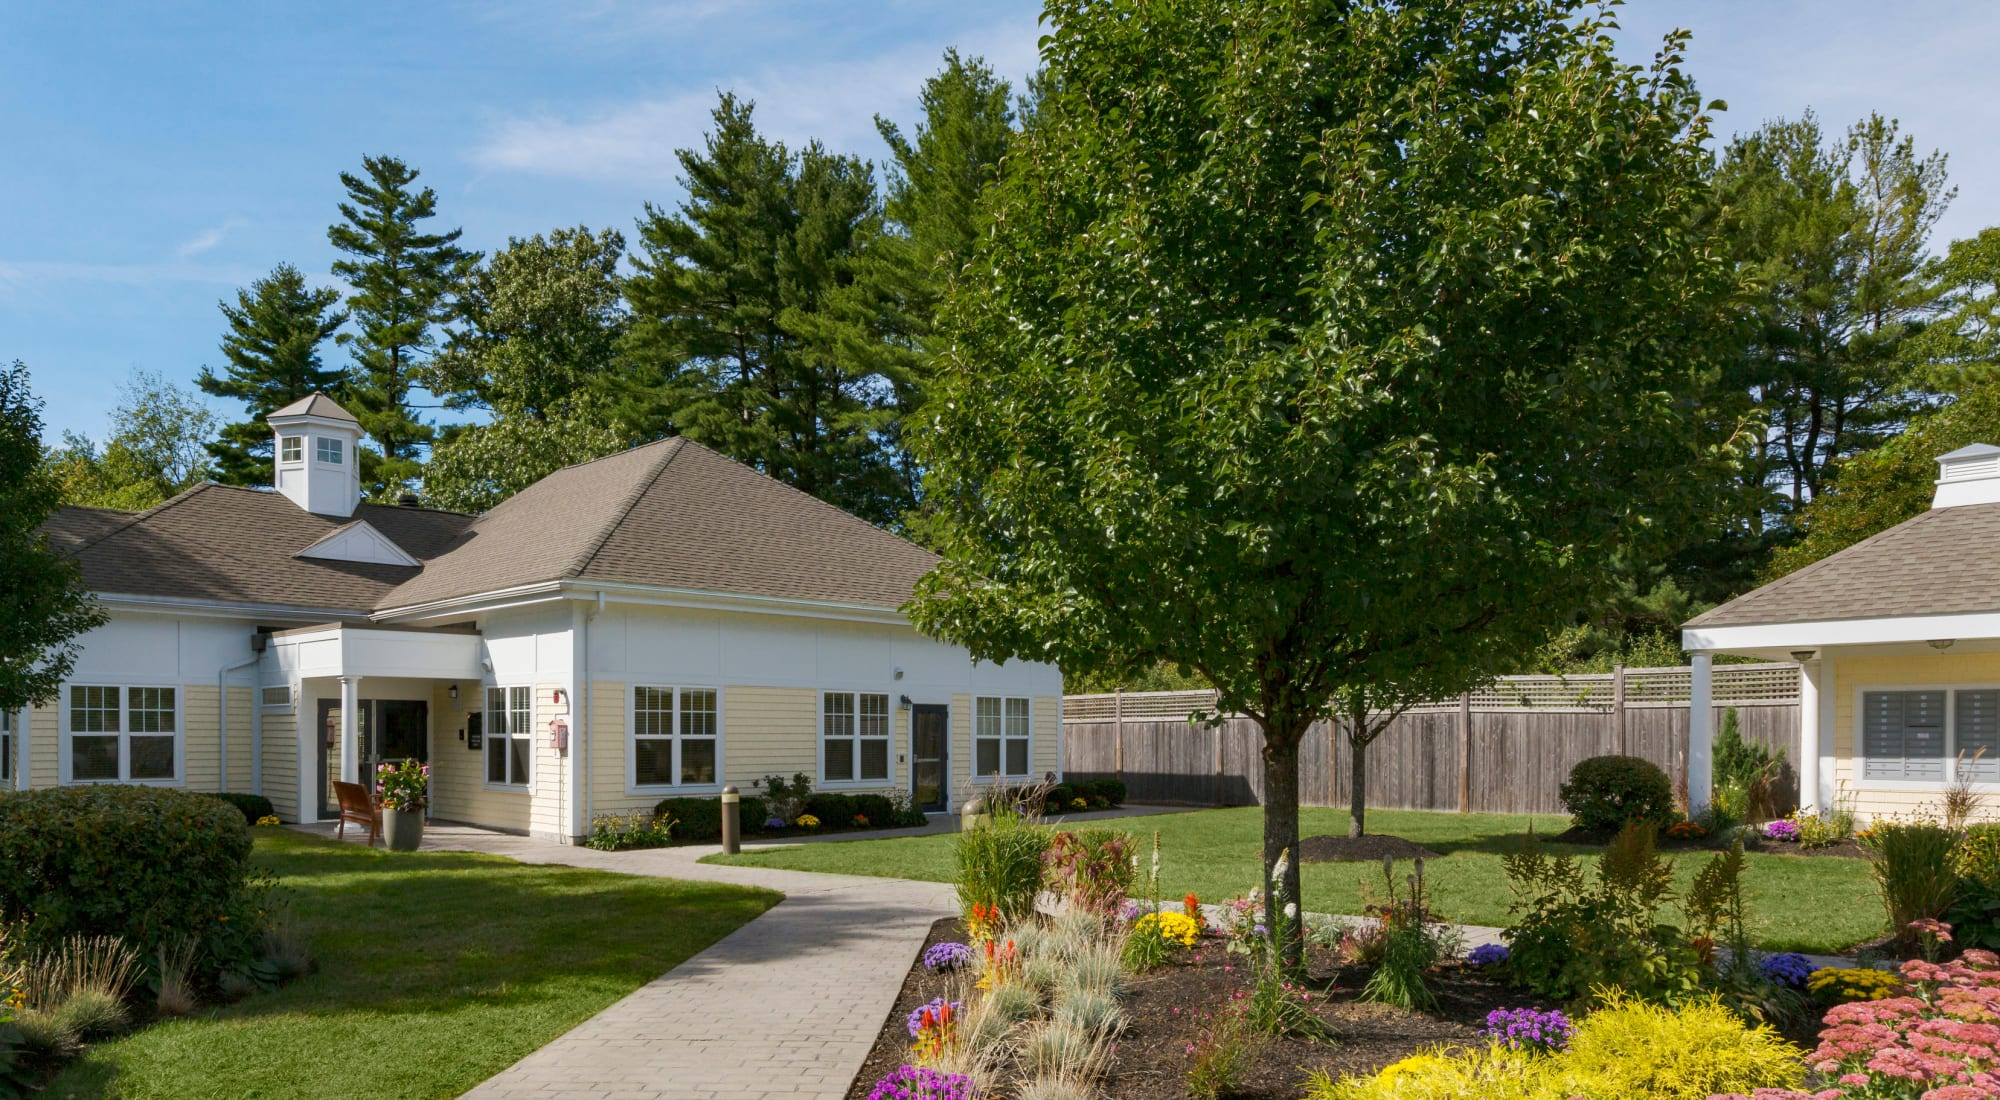 Apply to live at Regency Place in Wilmington, Massachusetts